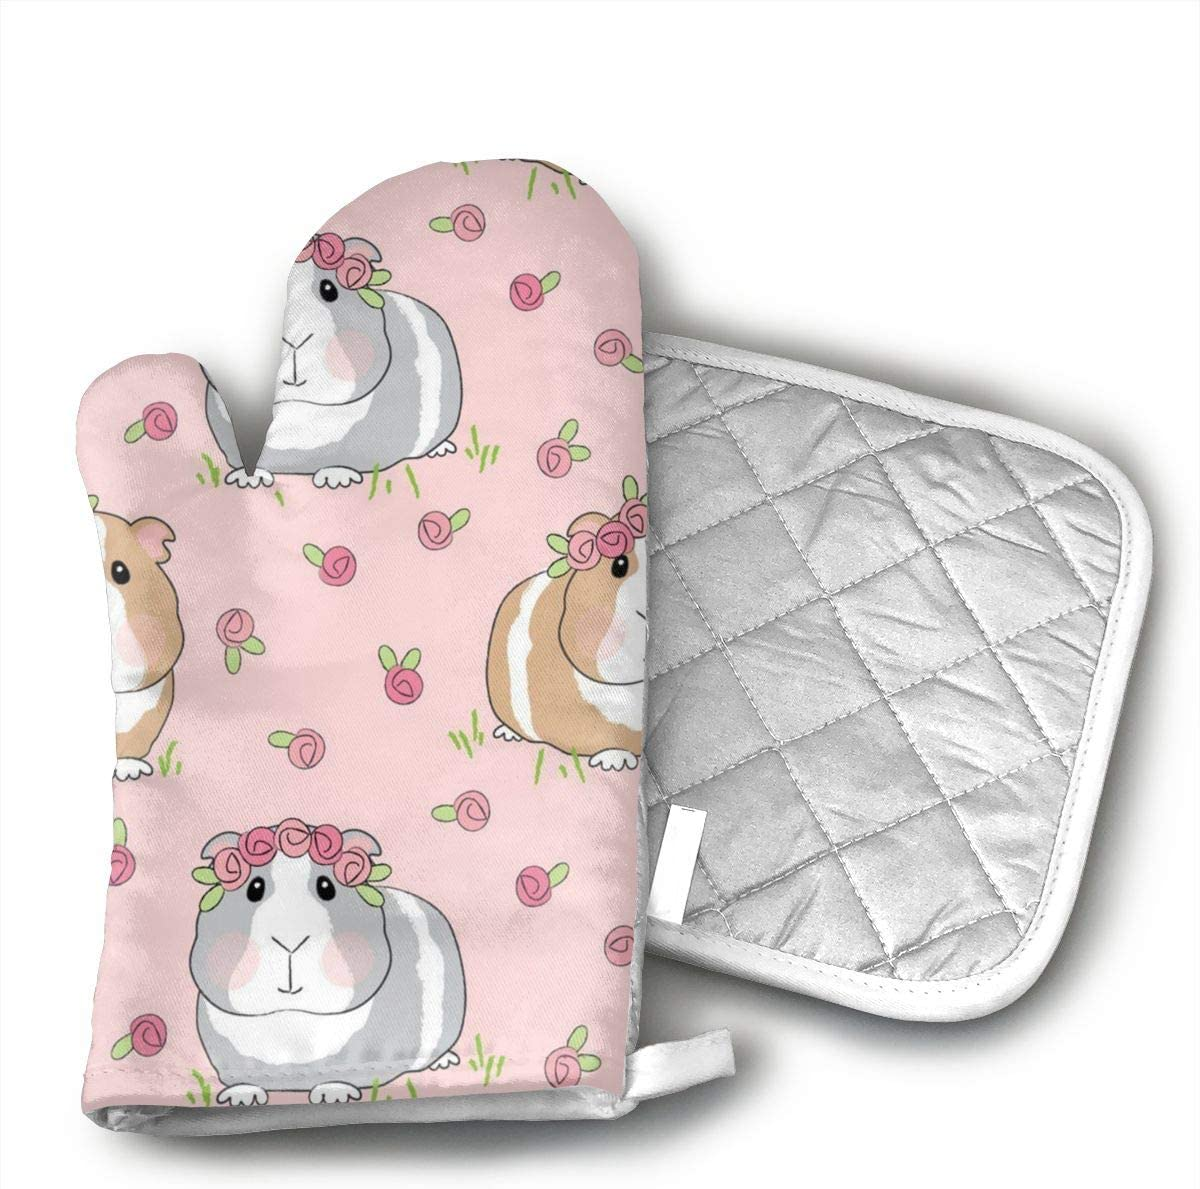 Teuwia Guinea Pigs and Roses Oven Mitts and Pot Holders Baking Oven Gloves Hot Pads Set Heat Resistant for Finger Hand Wrist Protection